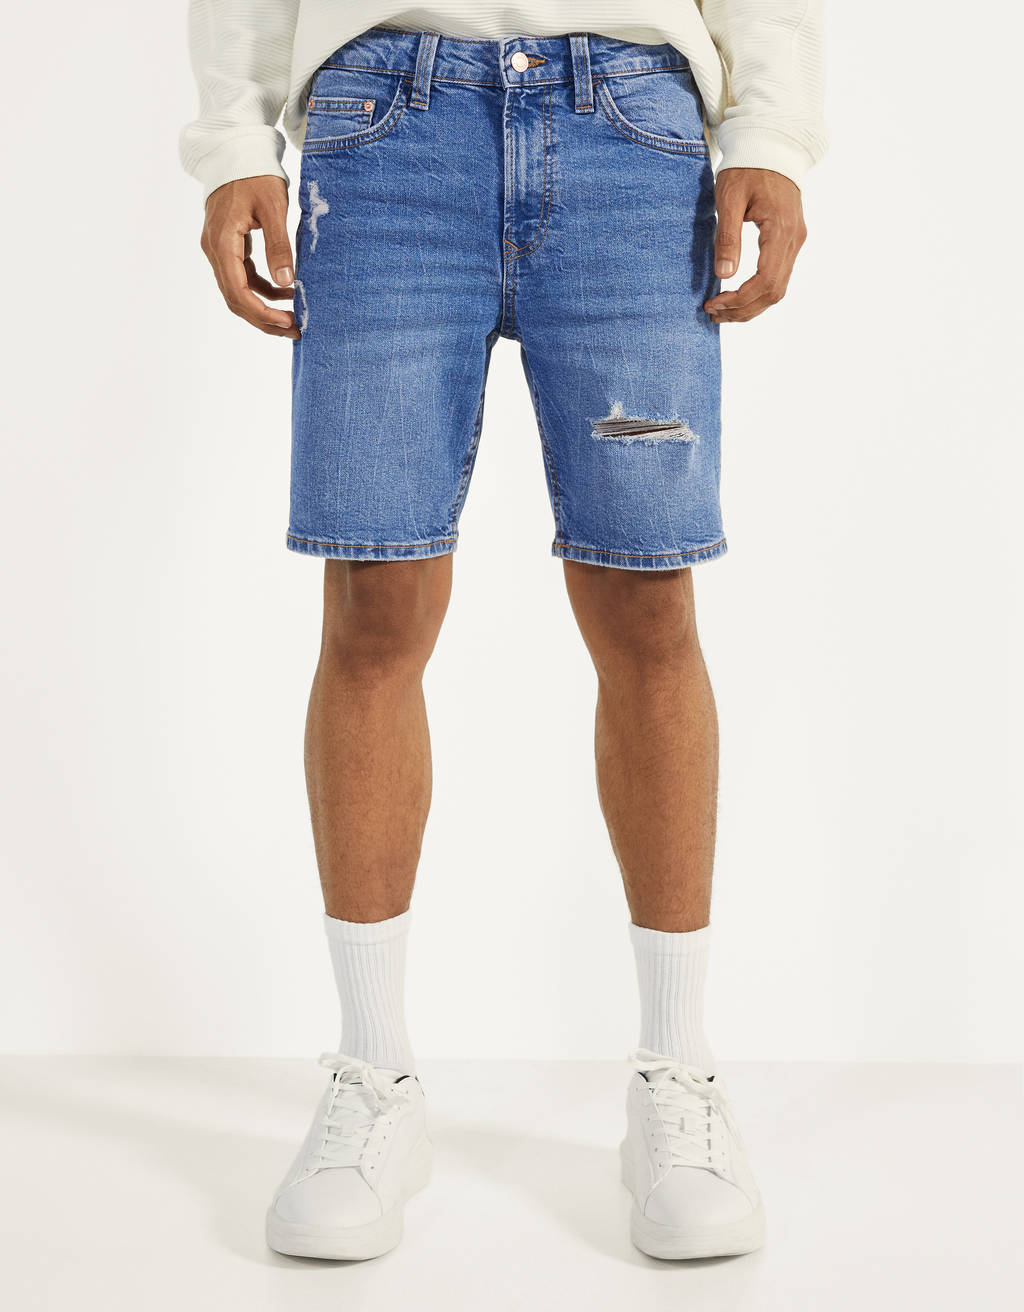 Skinny Fit denim Bermuda shorts